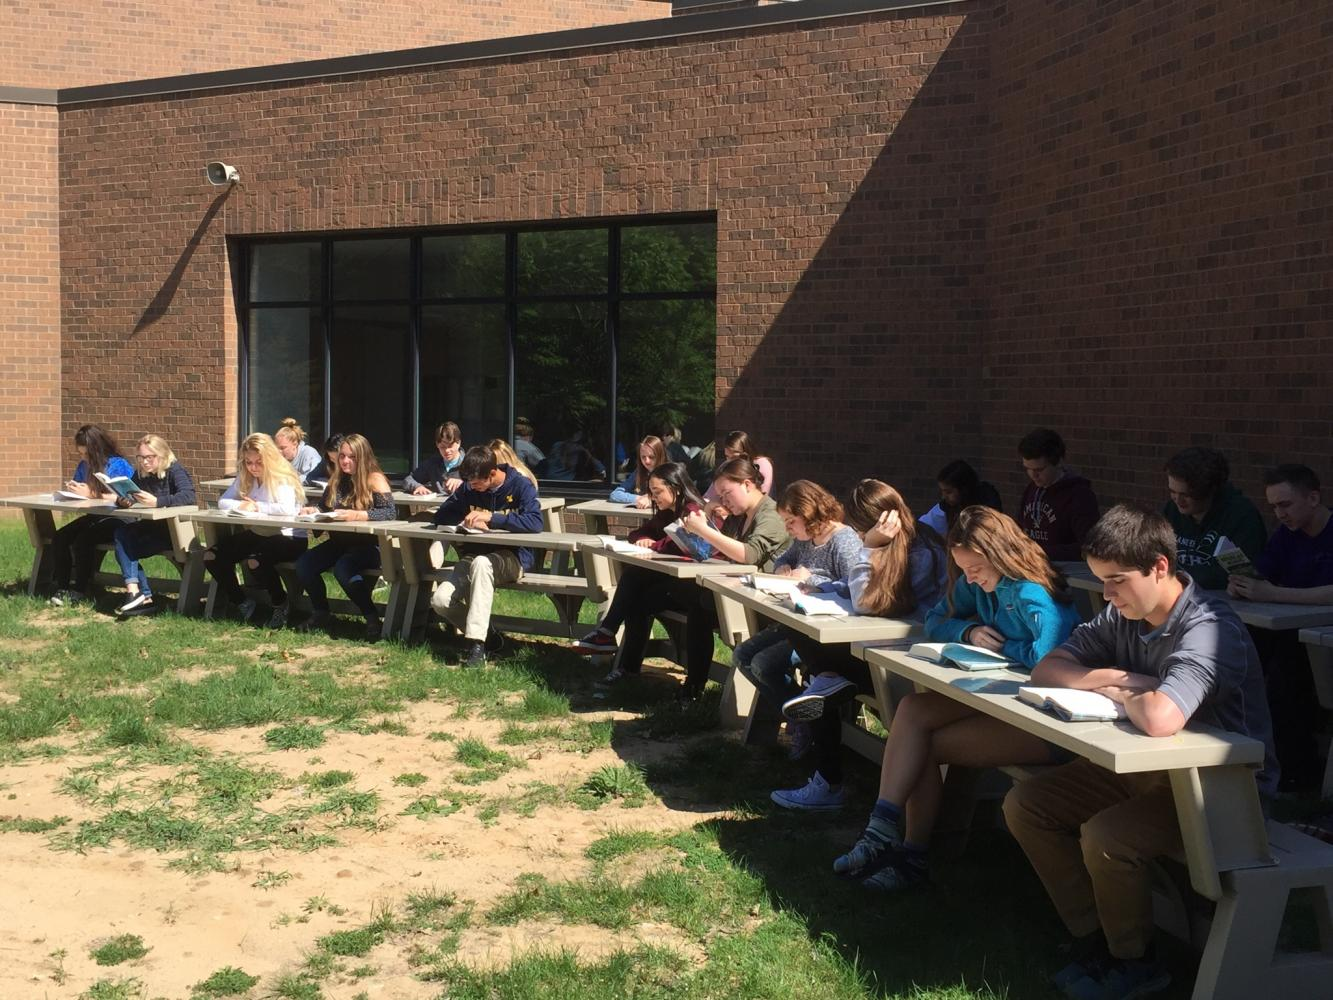 English teacher Ken George creates an outdoor classroom